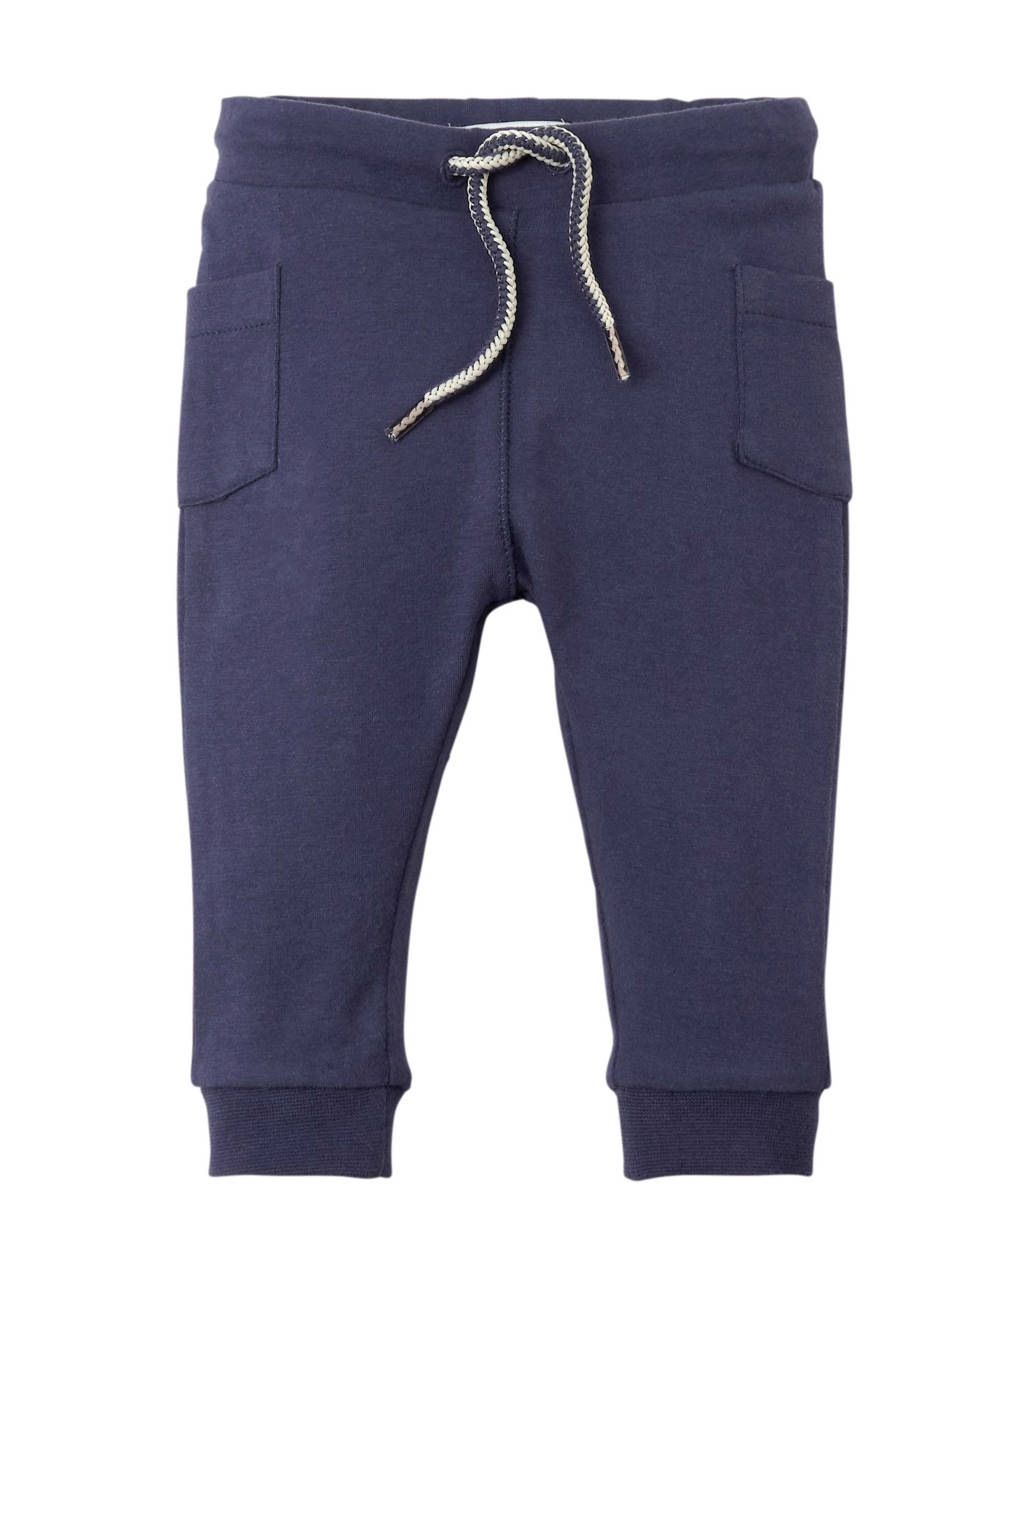 Noppies newborn baby broek Raytown, Marine